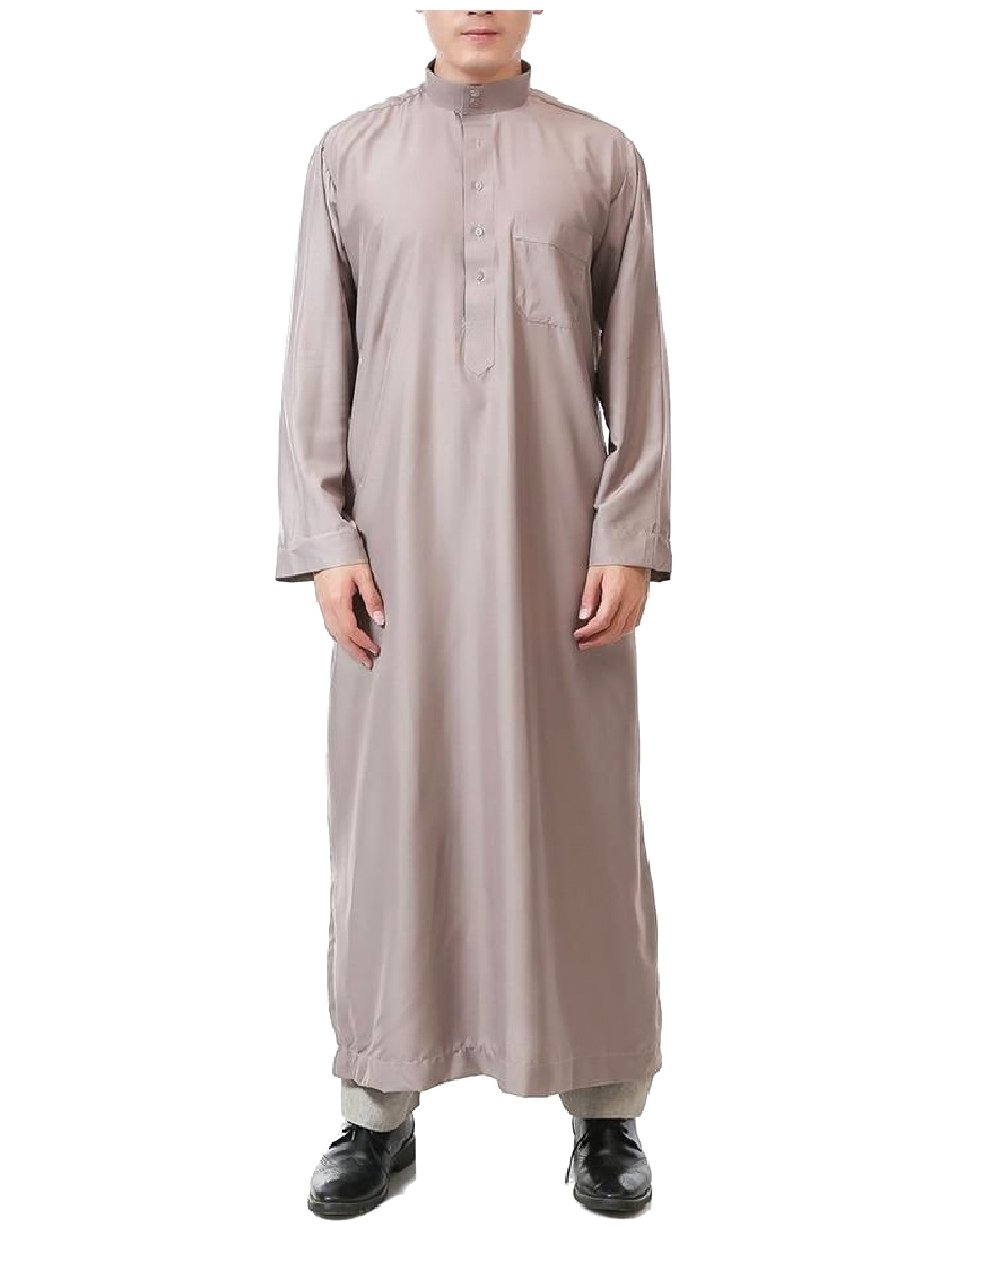 Zimaes Men Middle East Button-Up Stand Collar Long-Sleeve Muslim Thobe Khaki 60